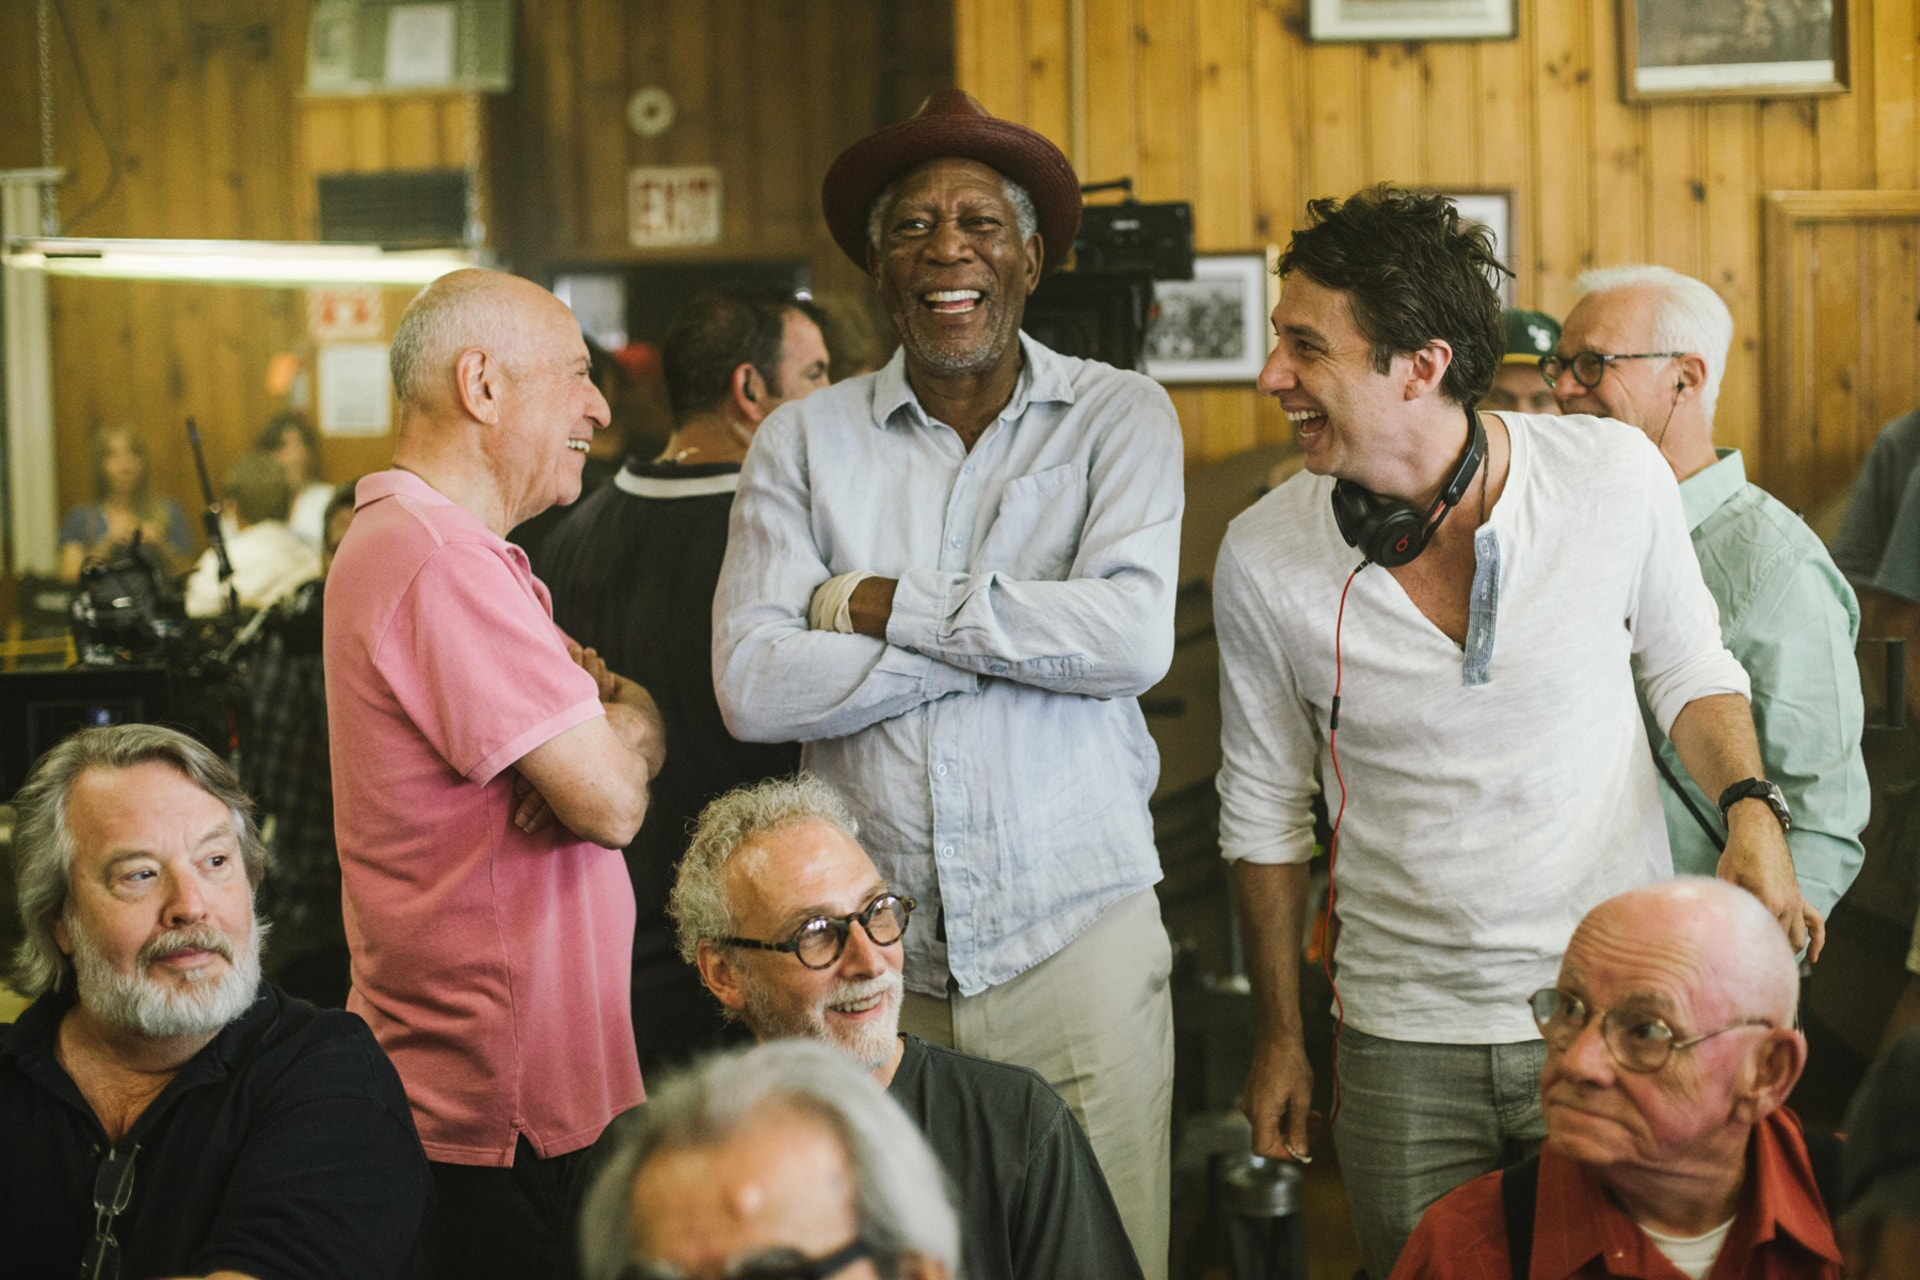 """ALAN ARKIN, MORGAN FREEMAN and director ZACH BRAFF on the set of the New Line Cinema and Village Roadshow comedy """"GOING IN STYLE,"""" a Warner Bros. Pictures release."""